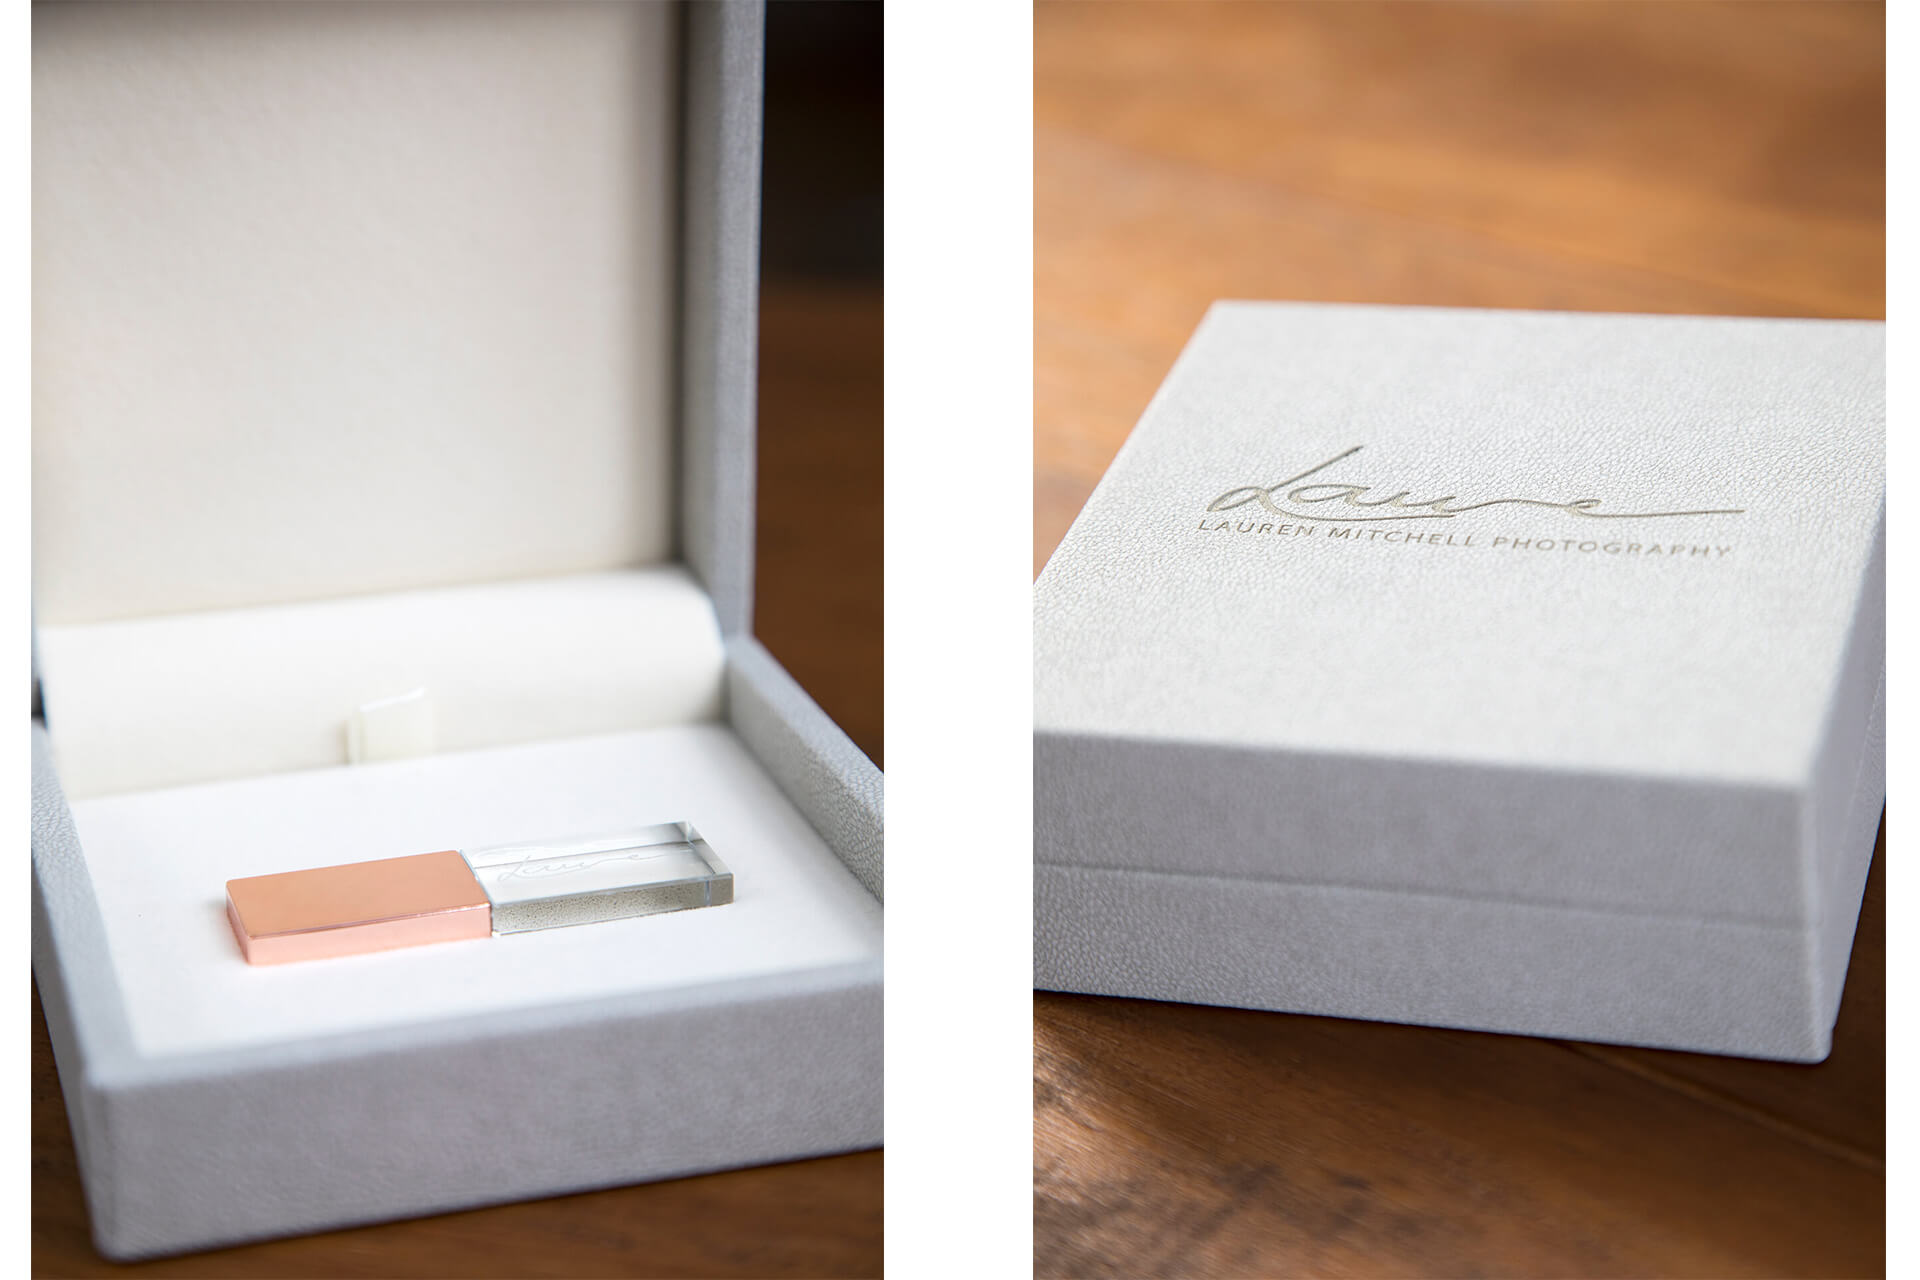 Luxury USB box containing your wedding images